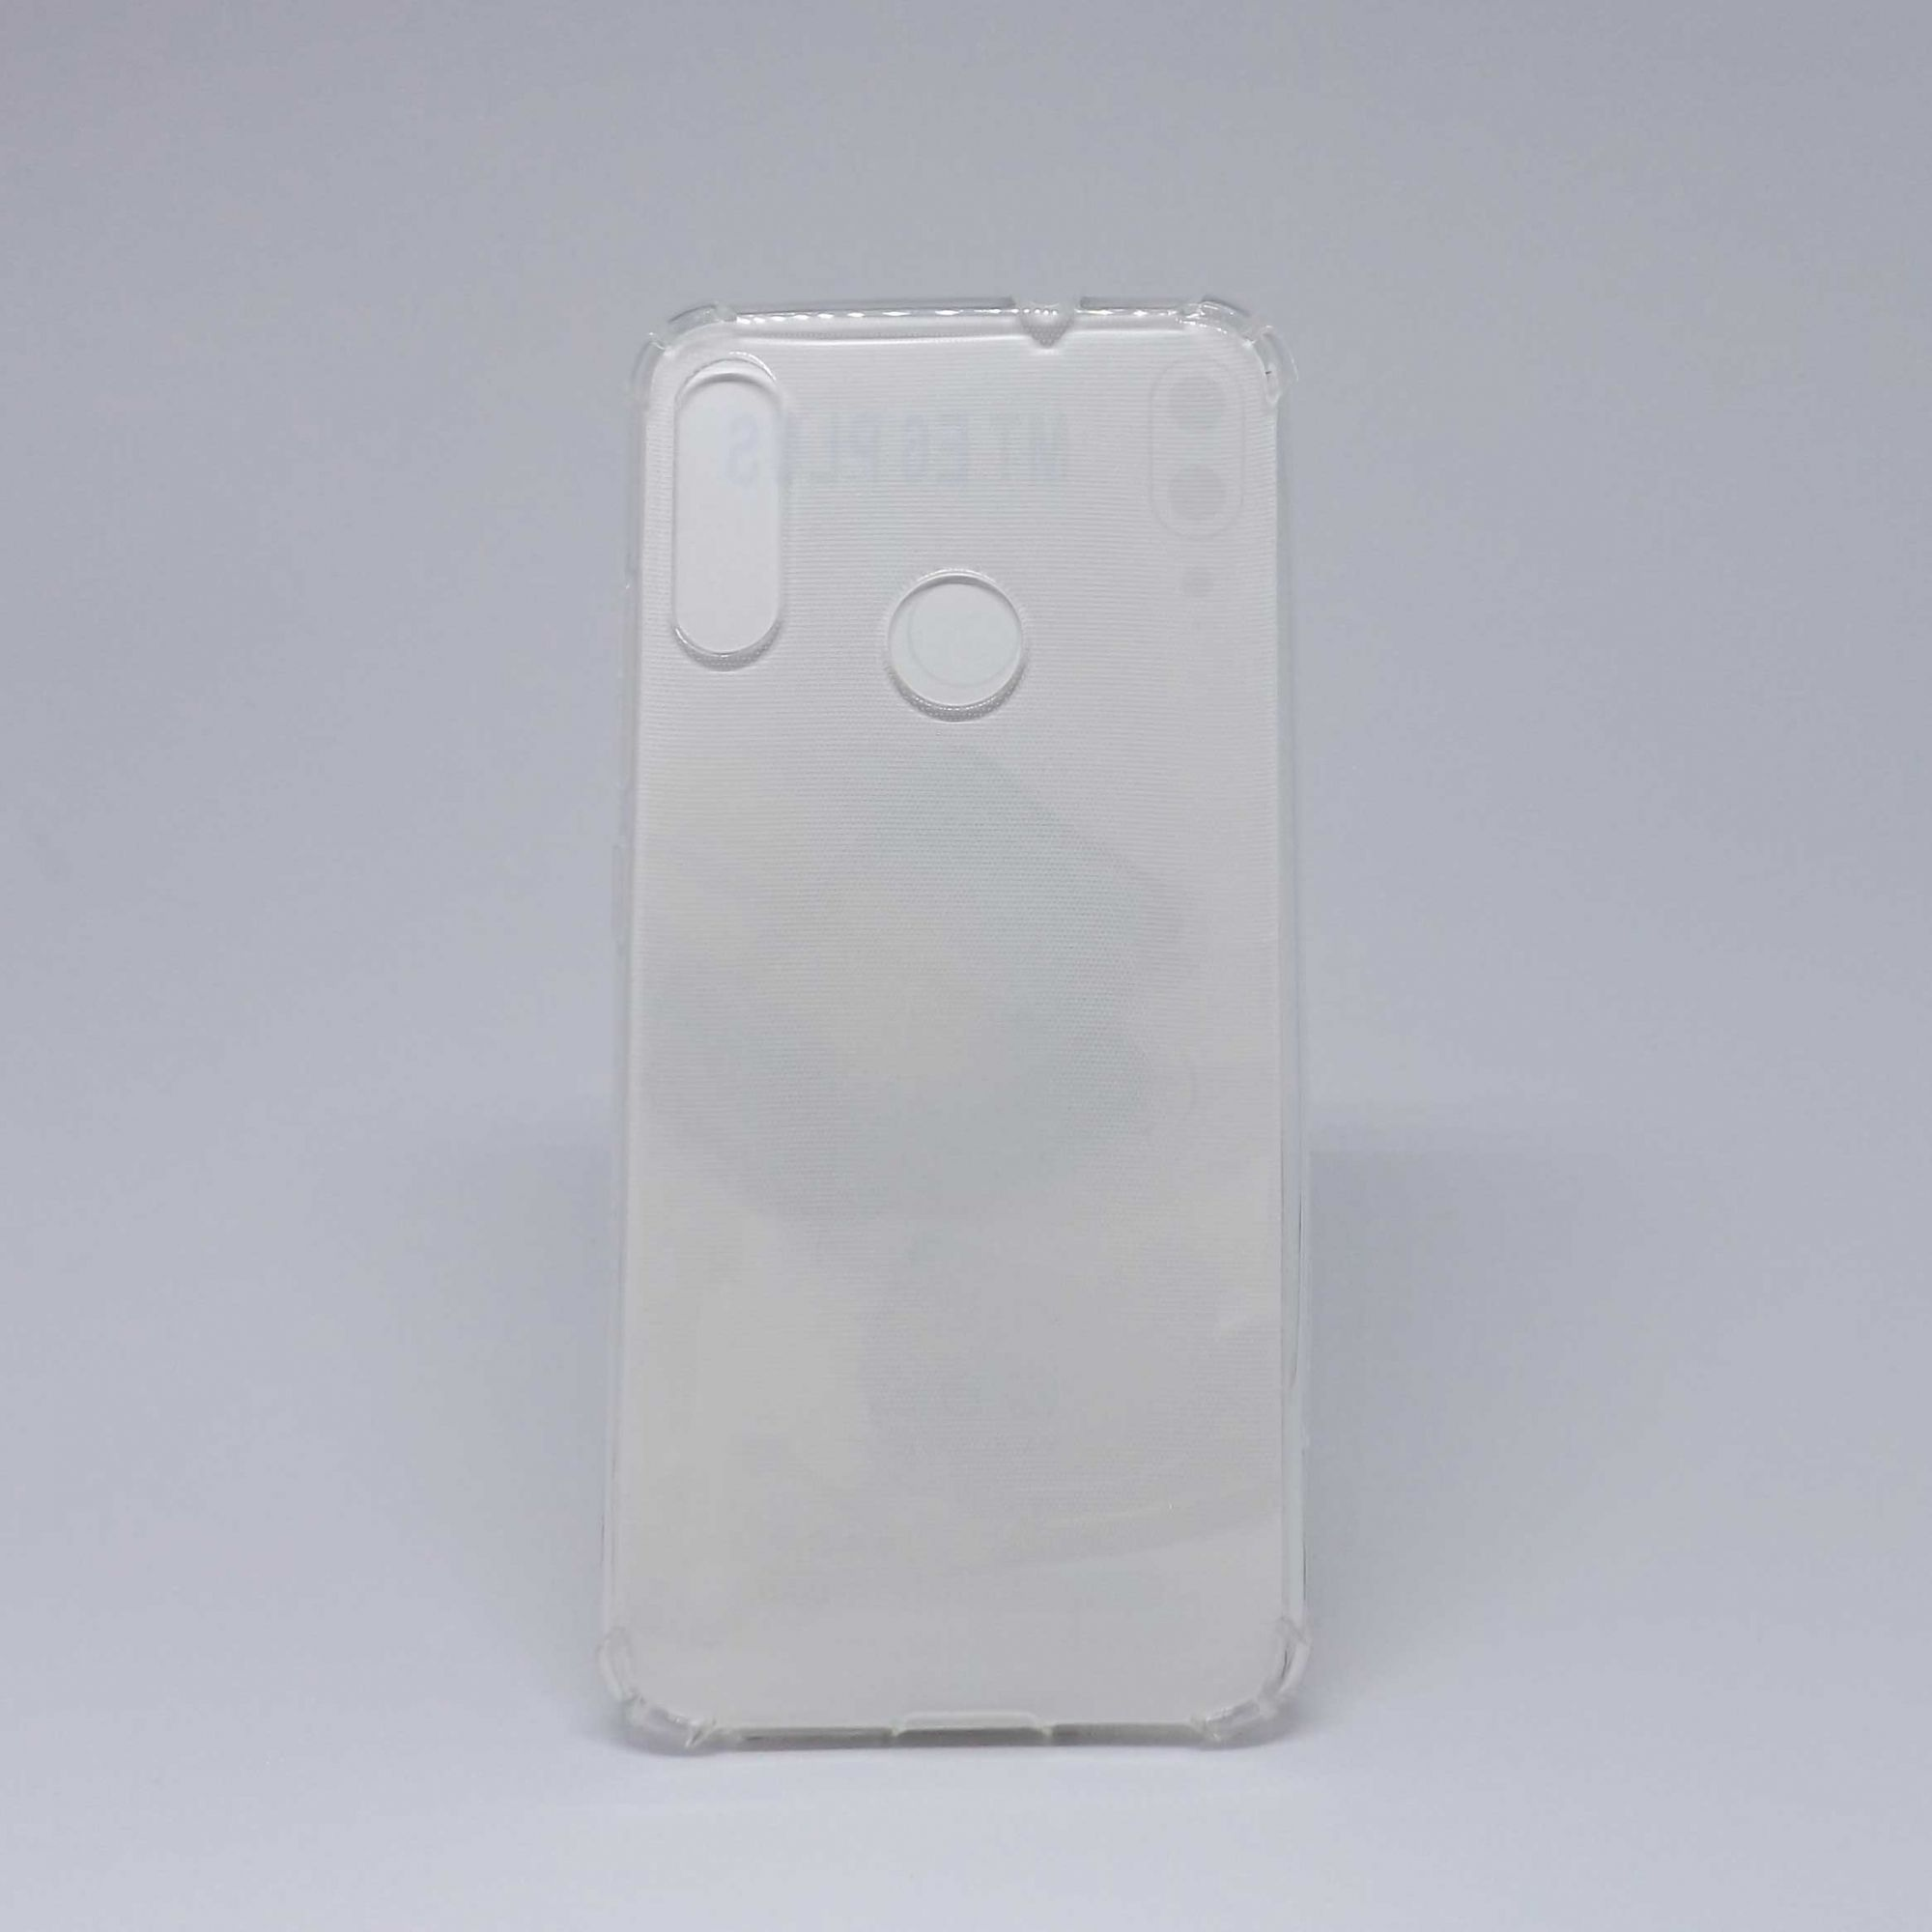 Capa Motorola E6 Plus Antiqueda Transparente